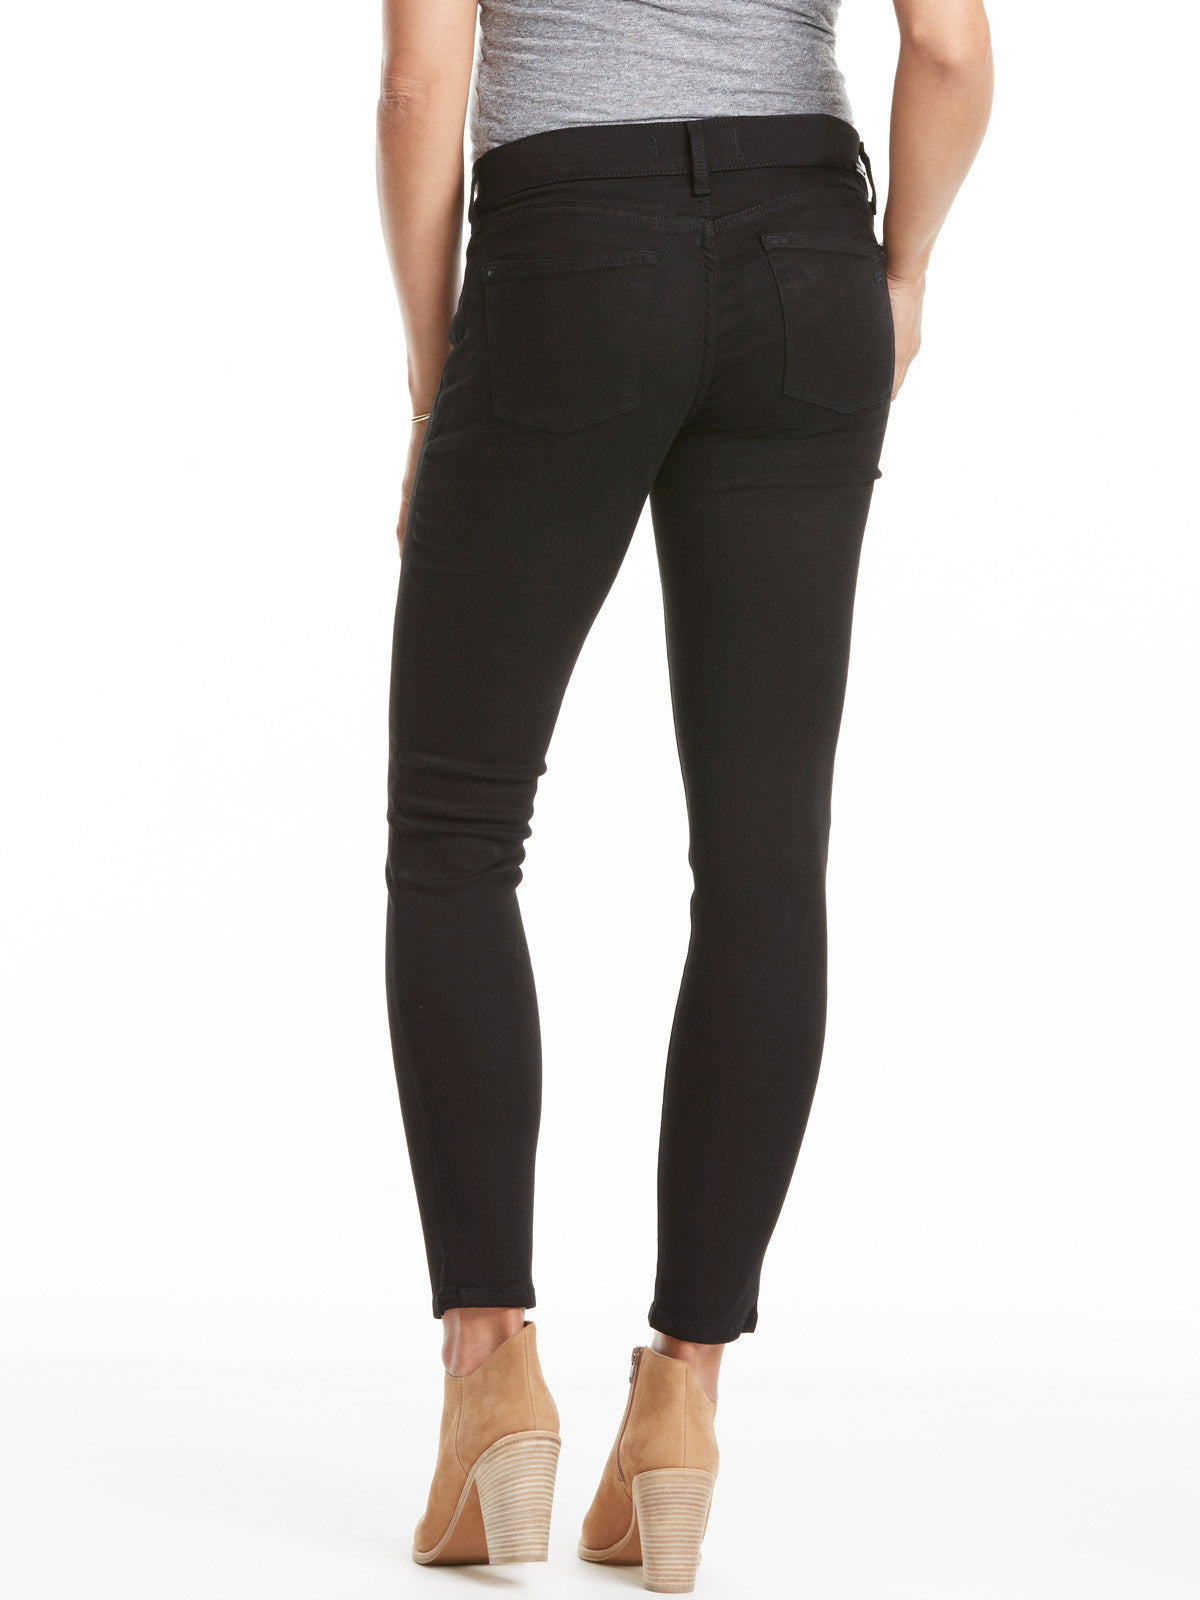 TILDEN | DL1961 Emma Maternity Jean - Hail